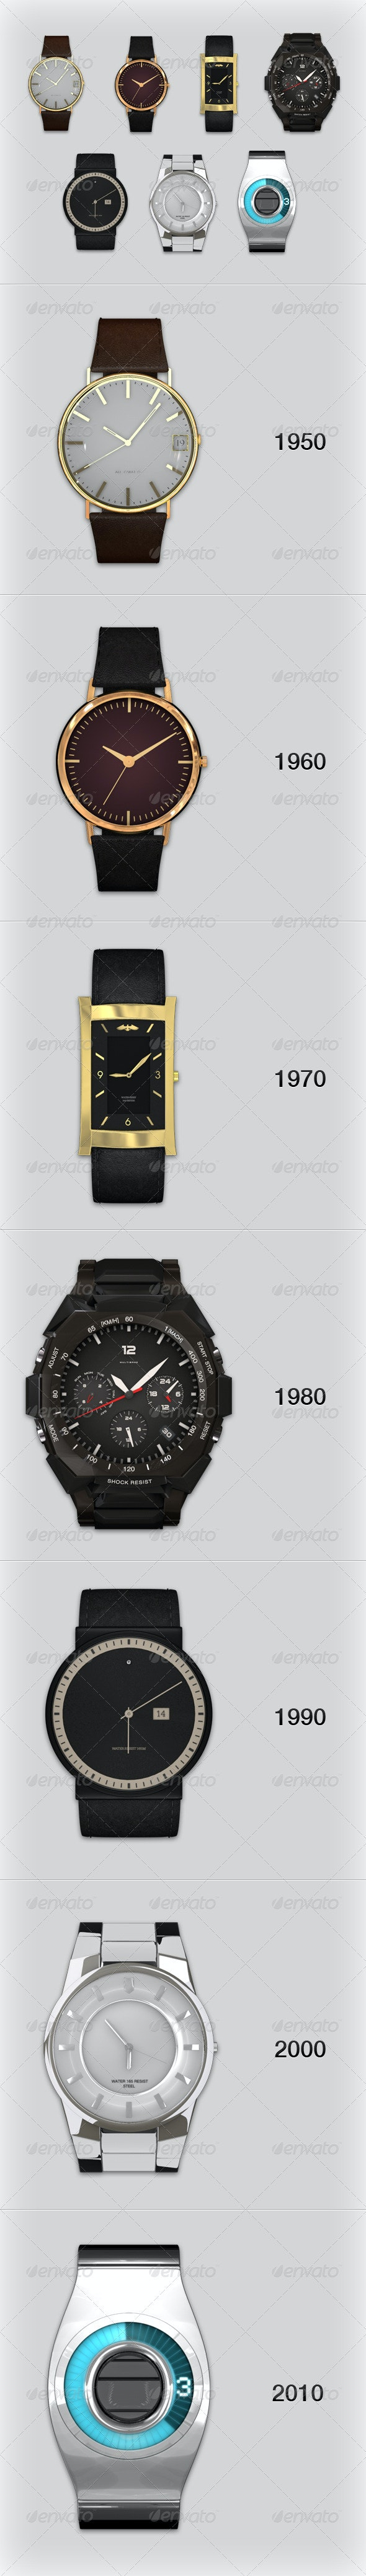 Watch Collection - Objects 3D Renders